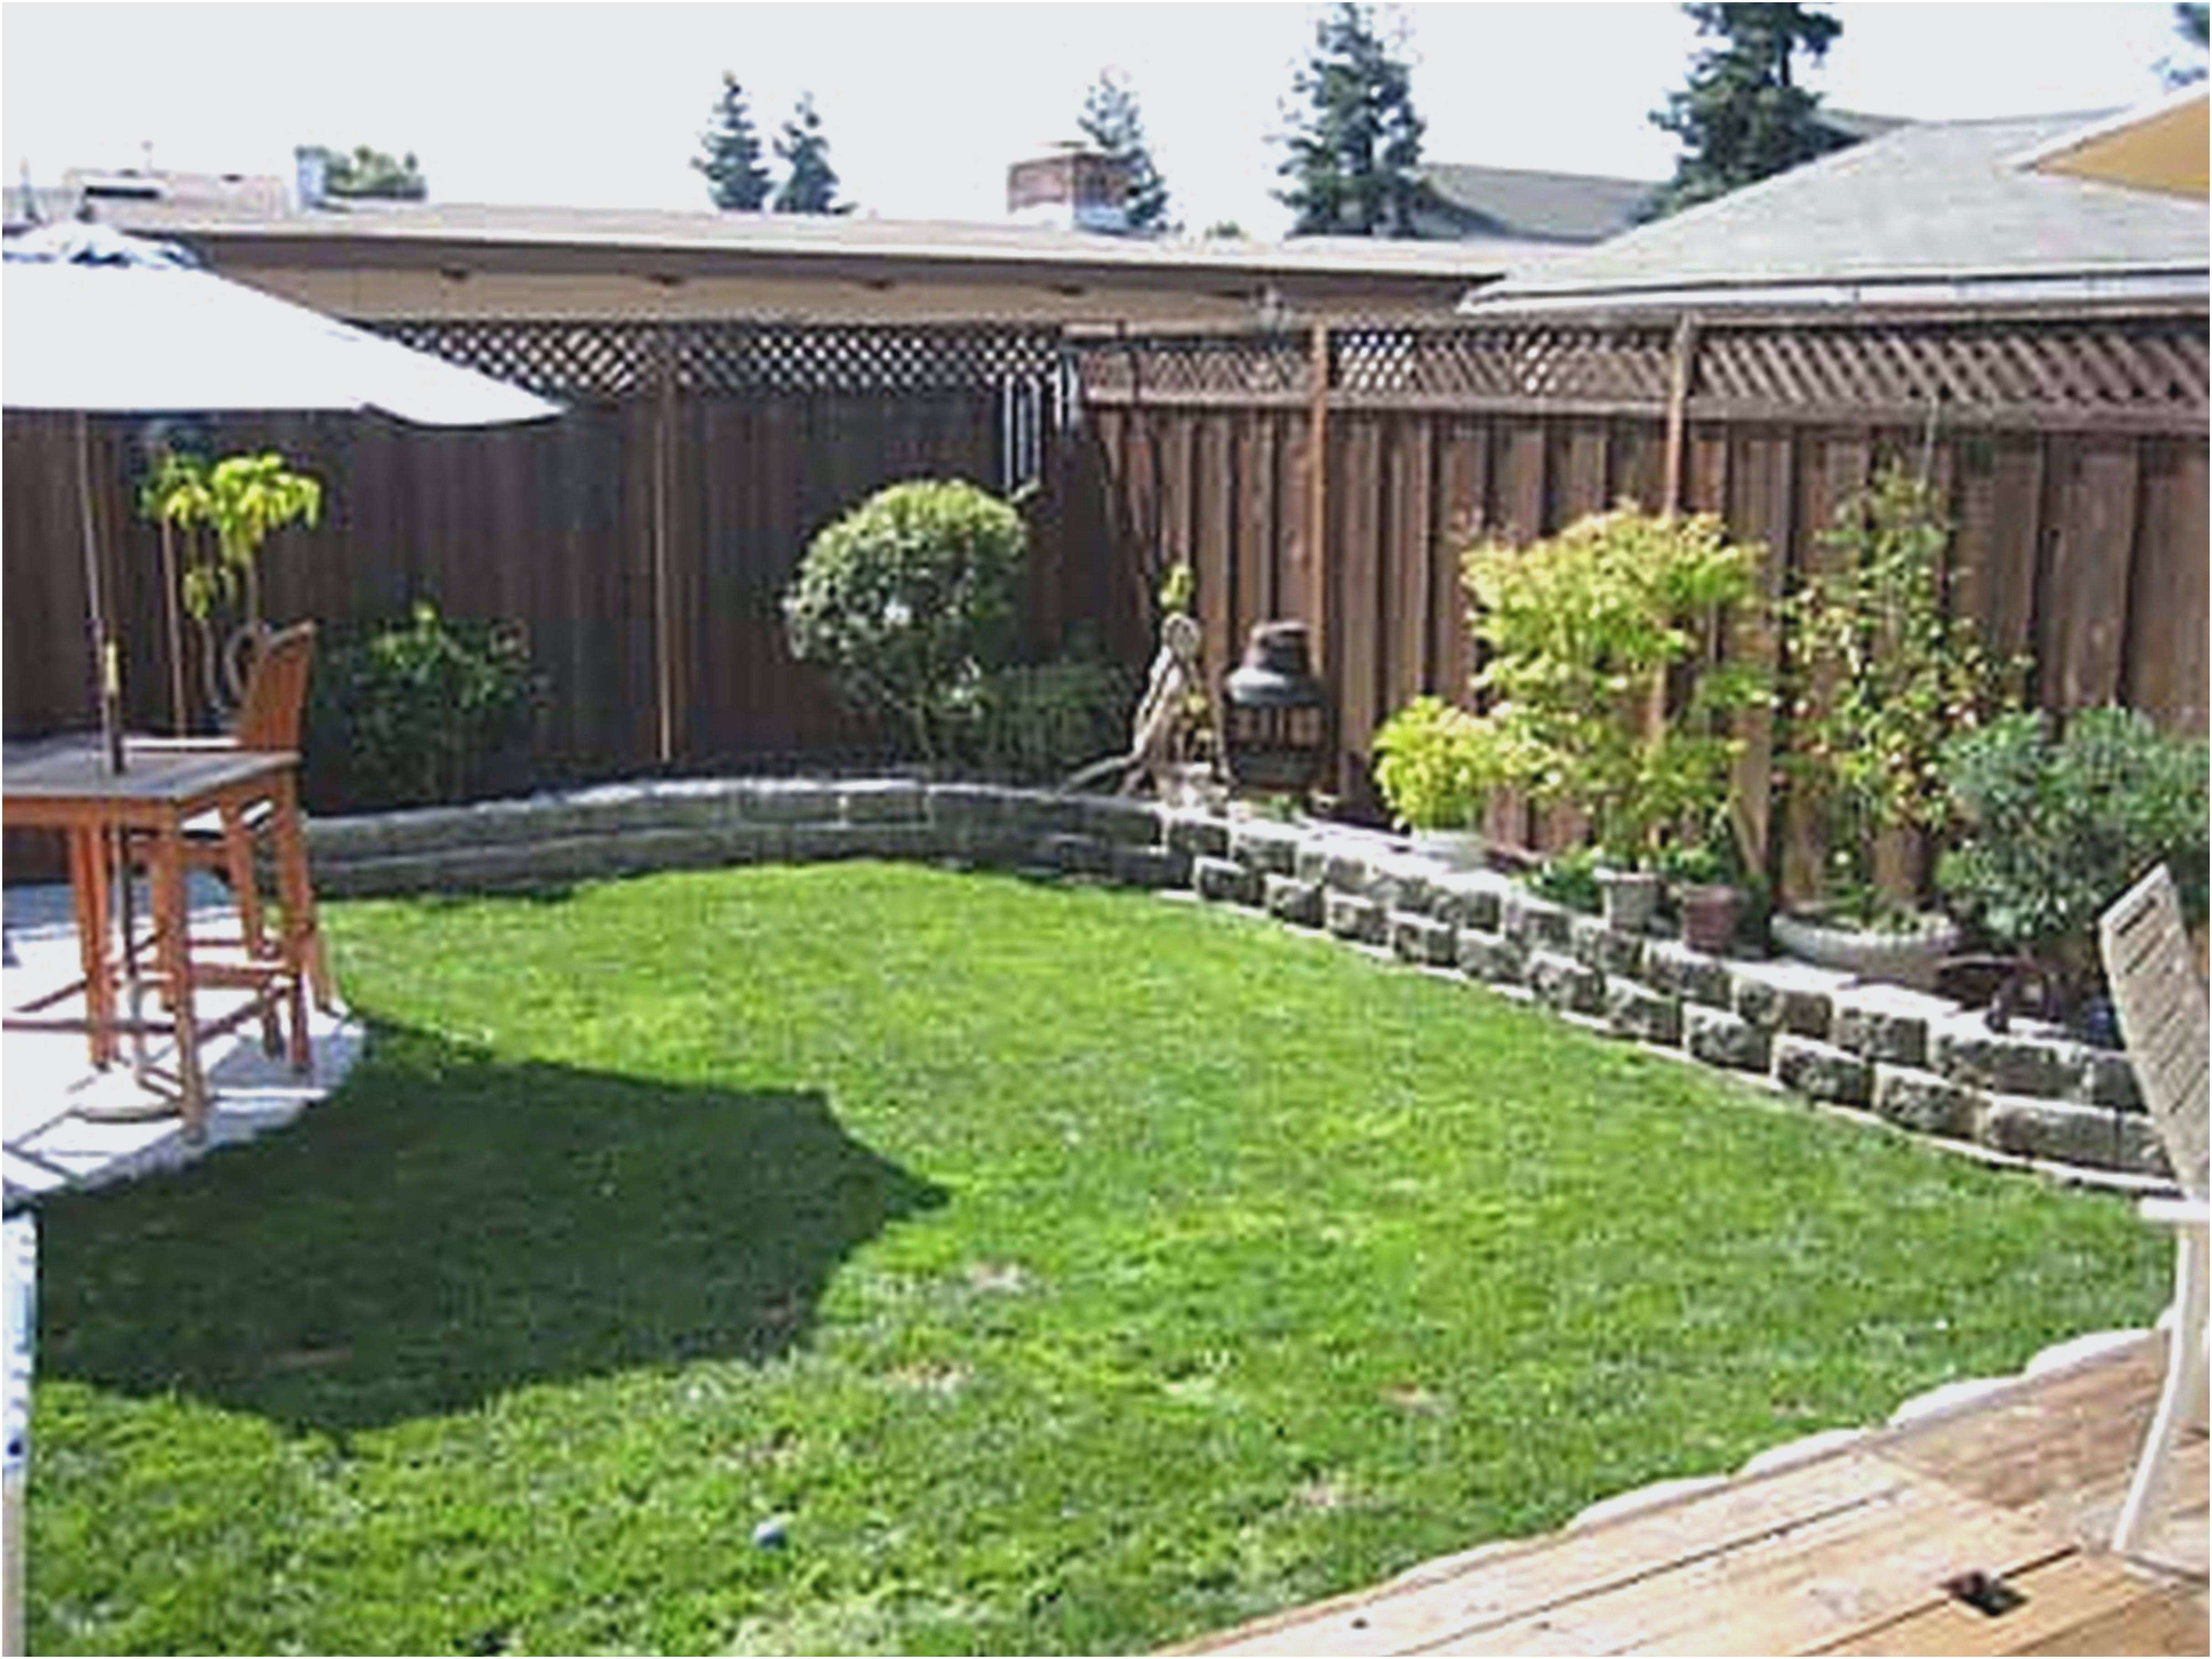 Low Cost Backyard Landscaping Ideas The Perfect Elegant Desert for 14 Clever Designs of How to Makeover Backyard Landscaping Cost